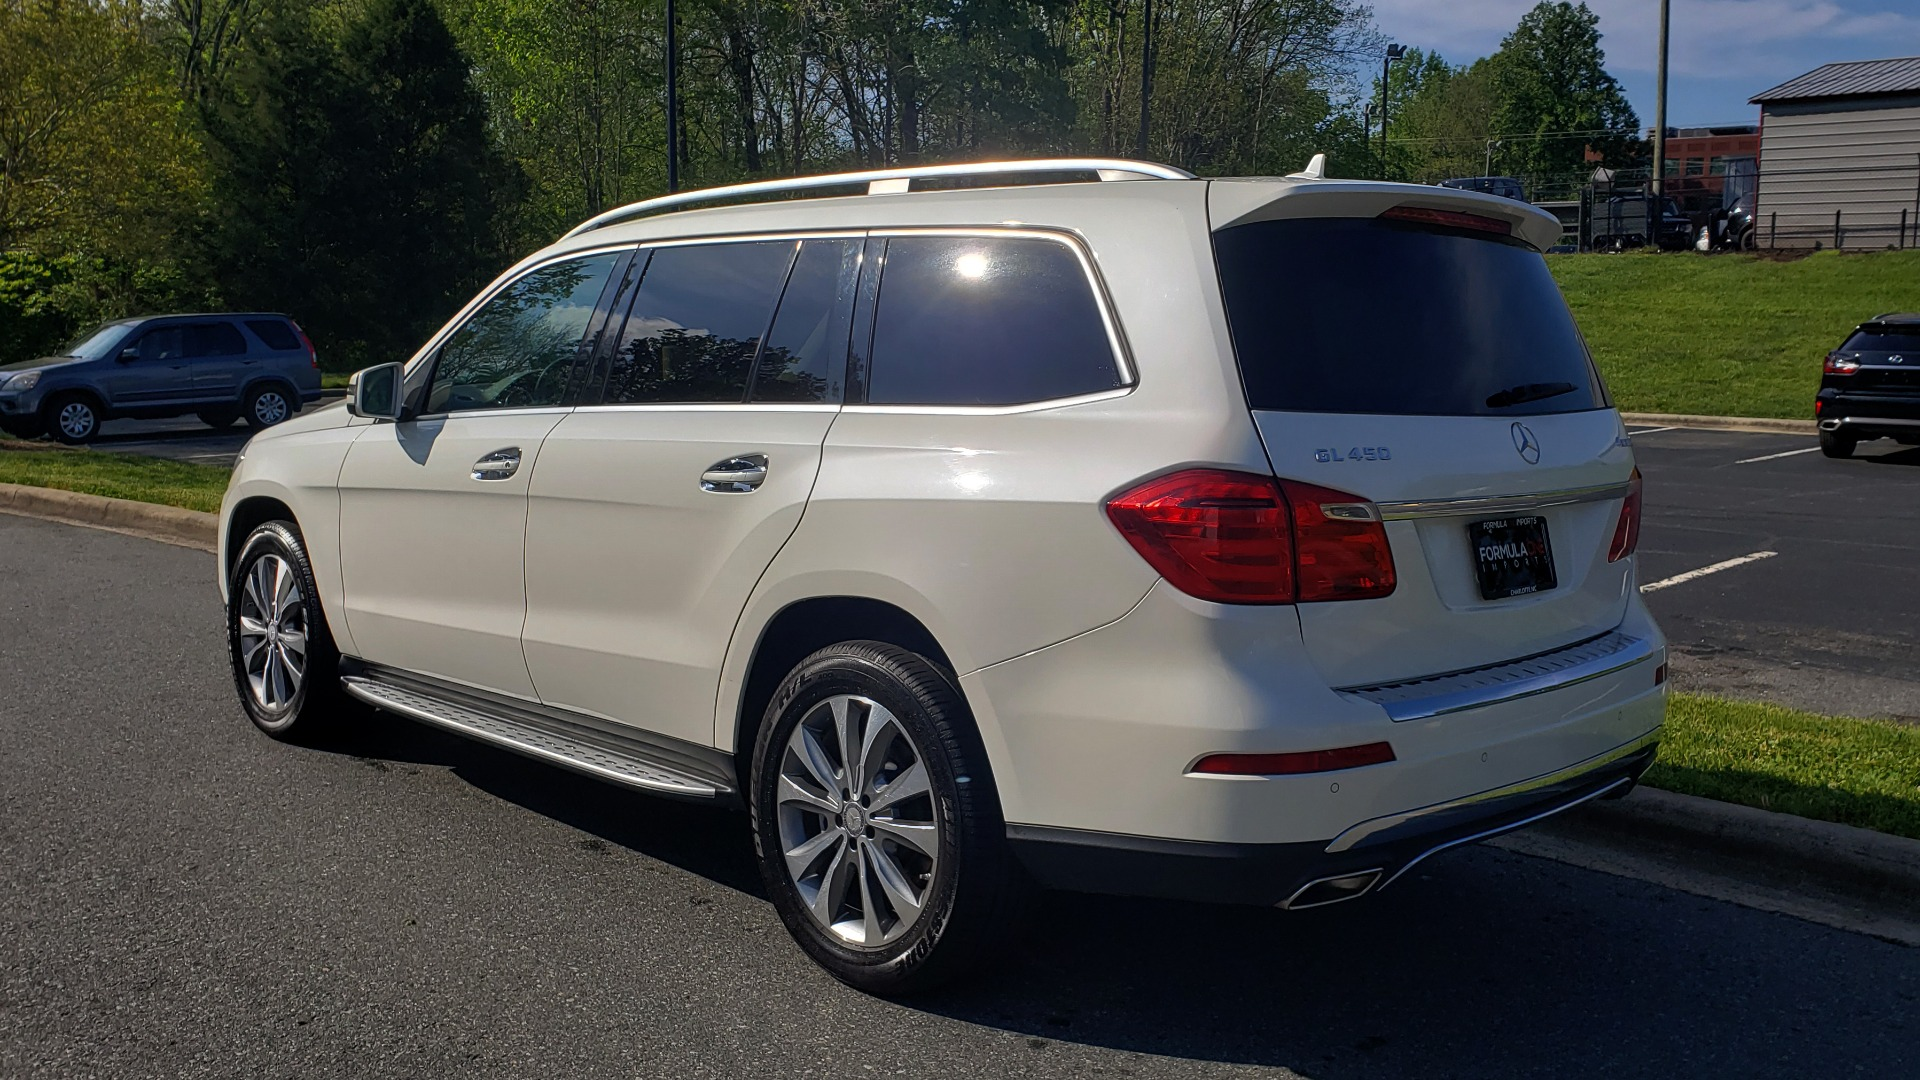 Used 2014 Mercedes-Benz GL-Class GL 450 PREMIUM / NAV / SUNROOF / 3-ROW / REARVIEW for sale Sold at Formula Imports in Charlotte NC 28227 3